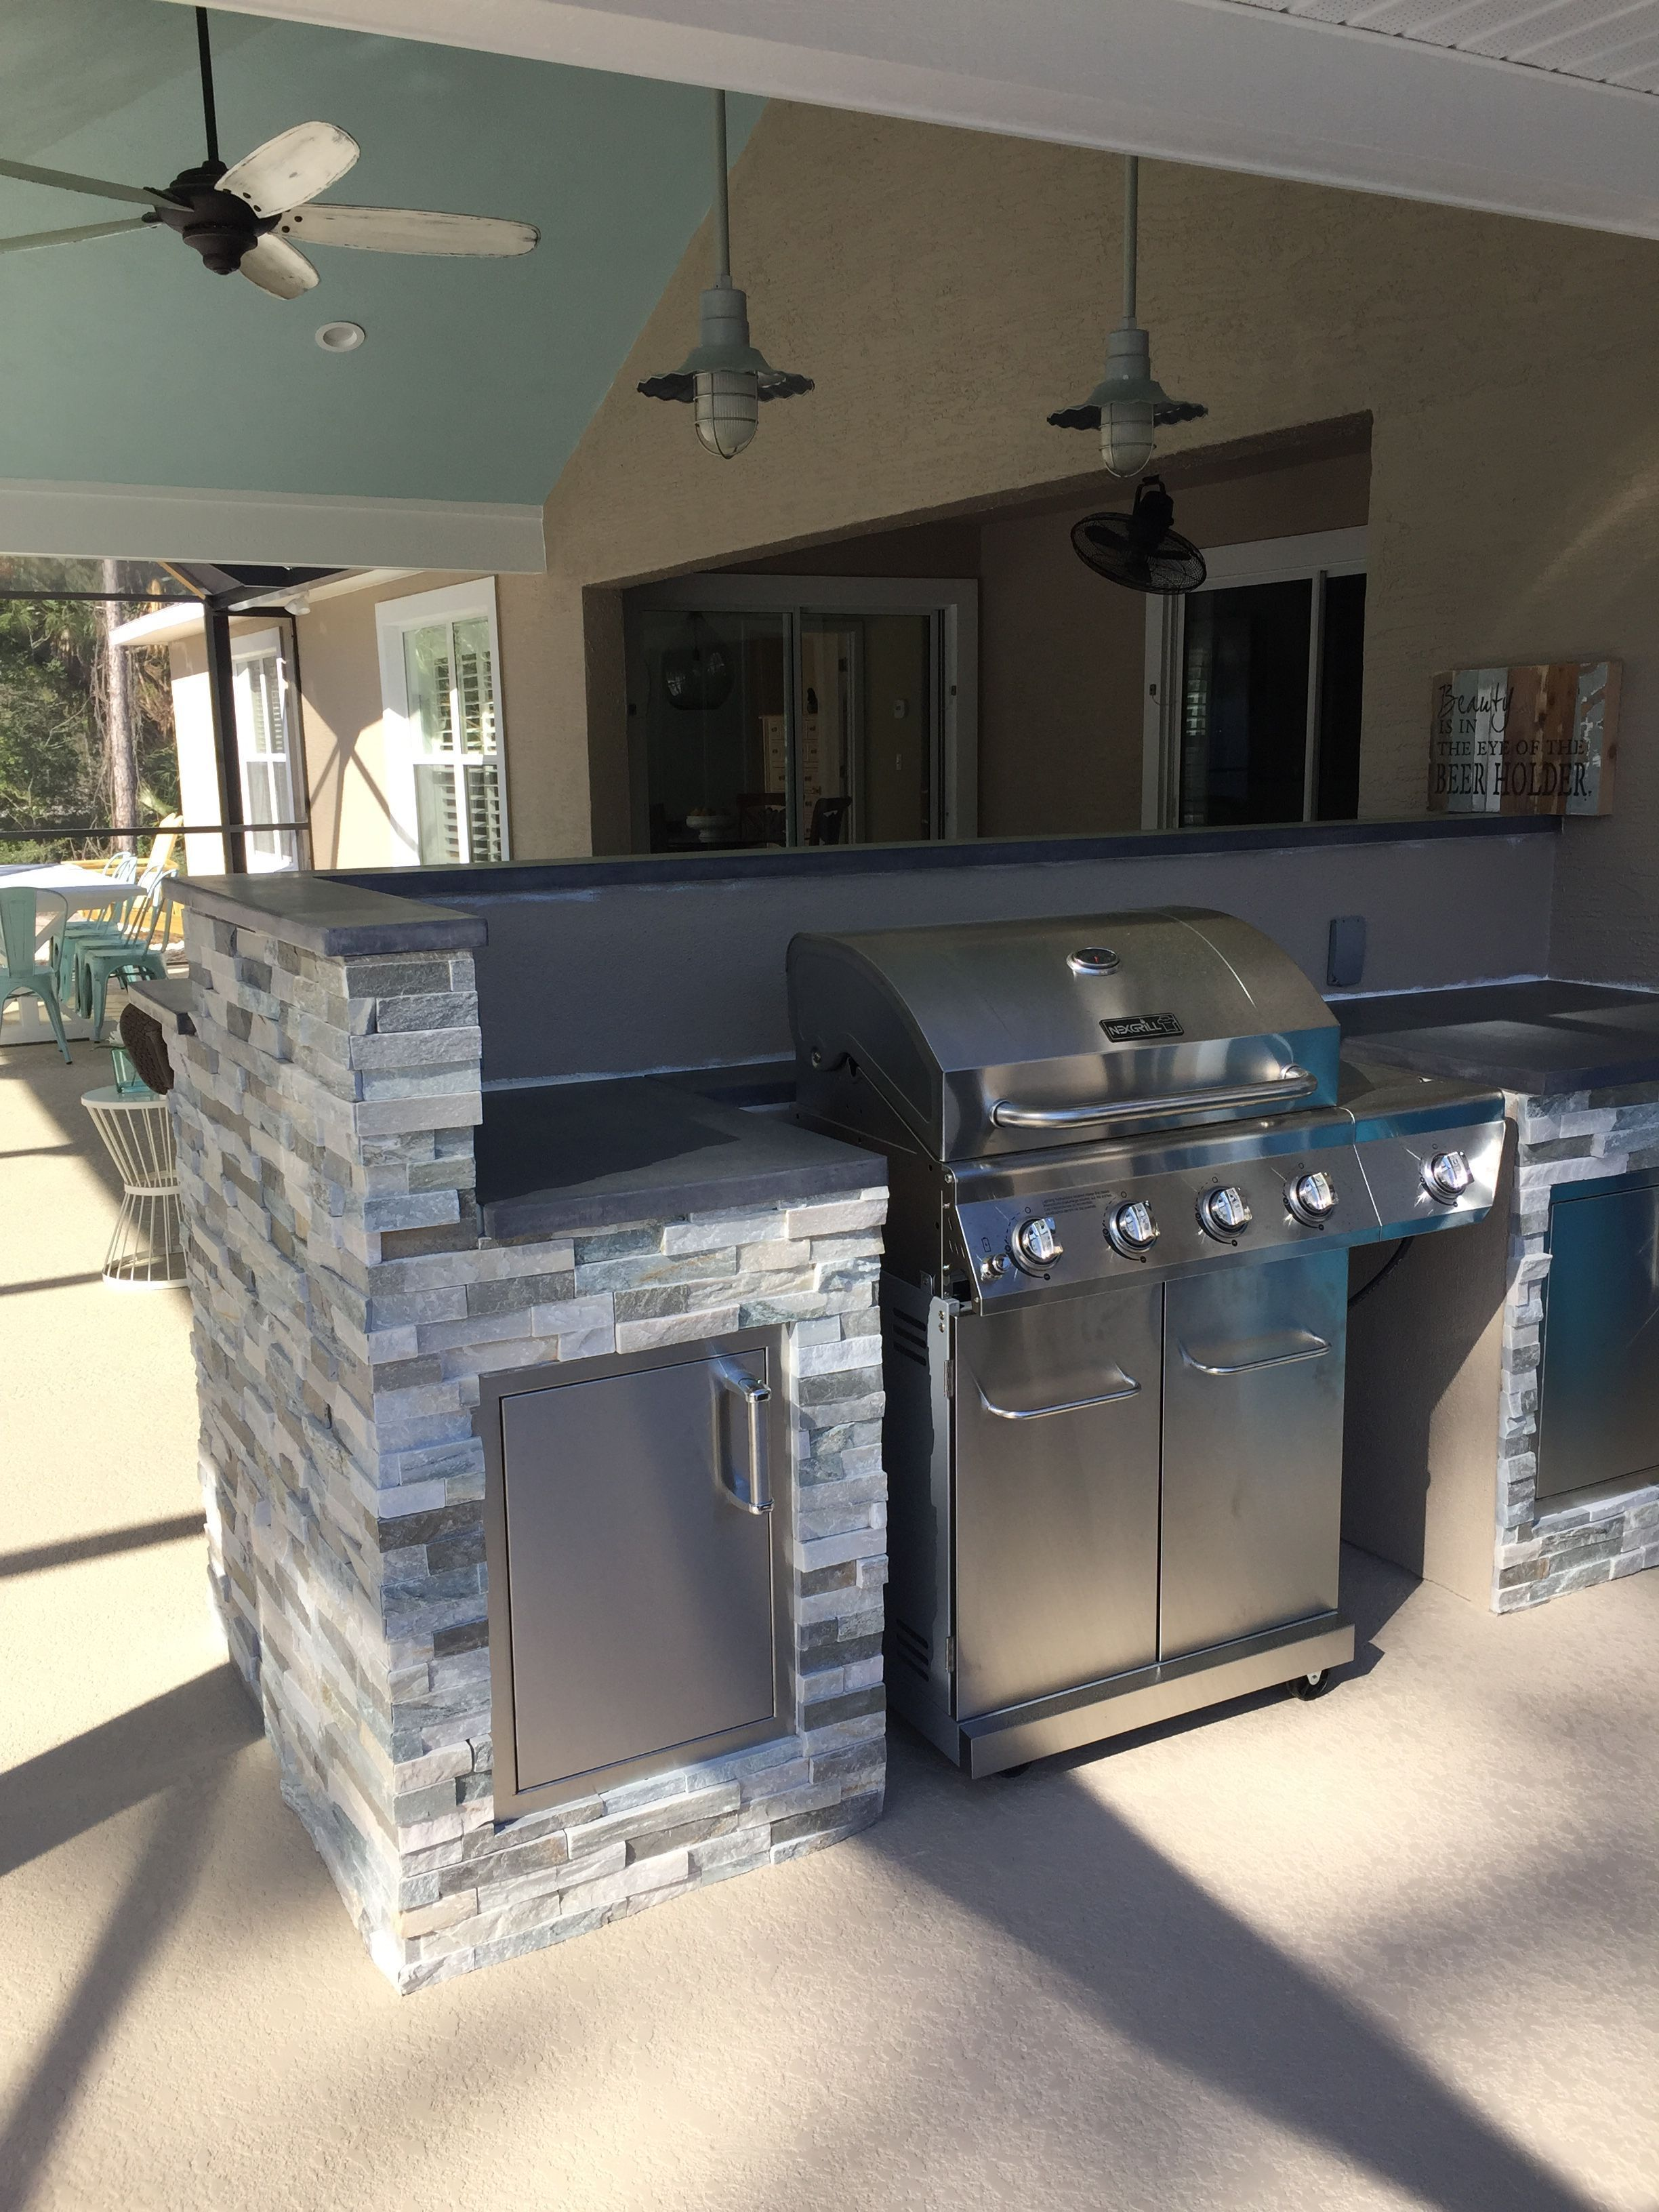 10 Outdoor Kitchen Ideas And Design With Images Outdoor Kitchen Design Layout Outdoor Kitchen Design Outdoor Kitchen Countertops